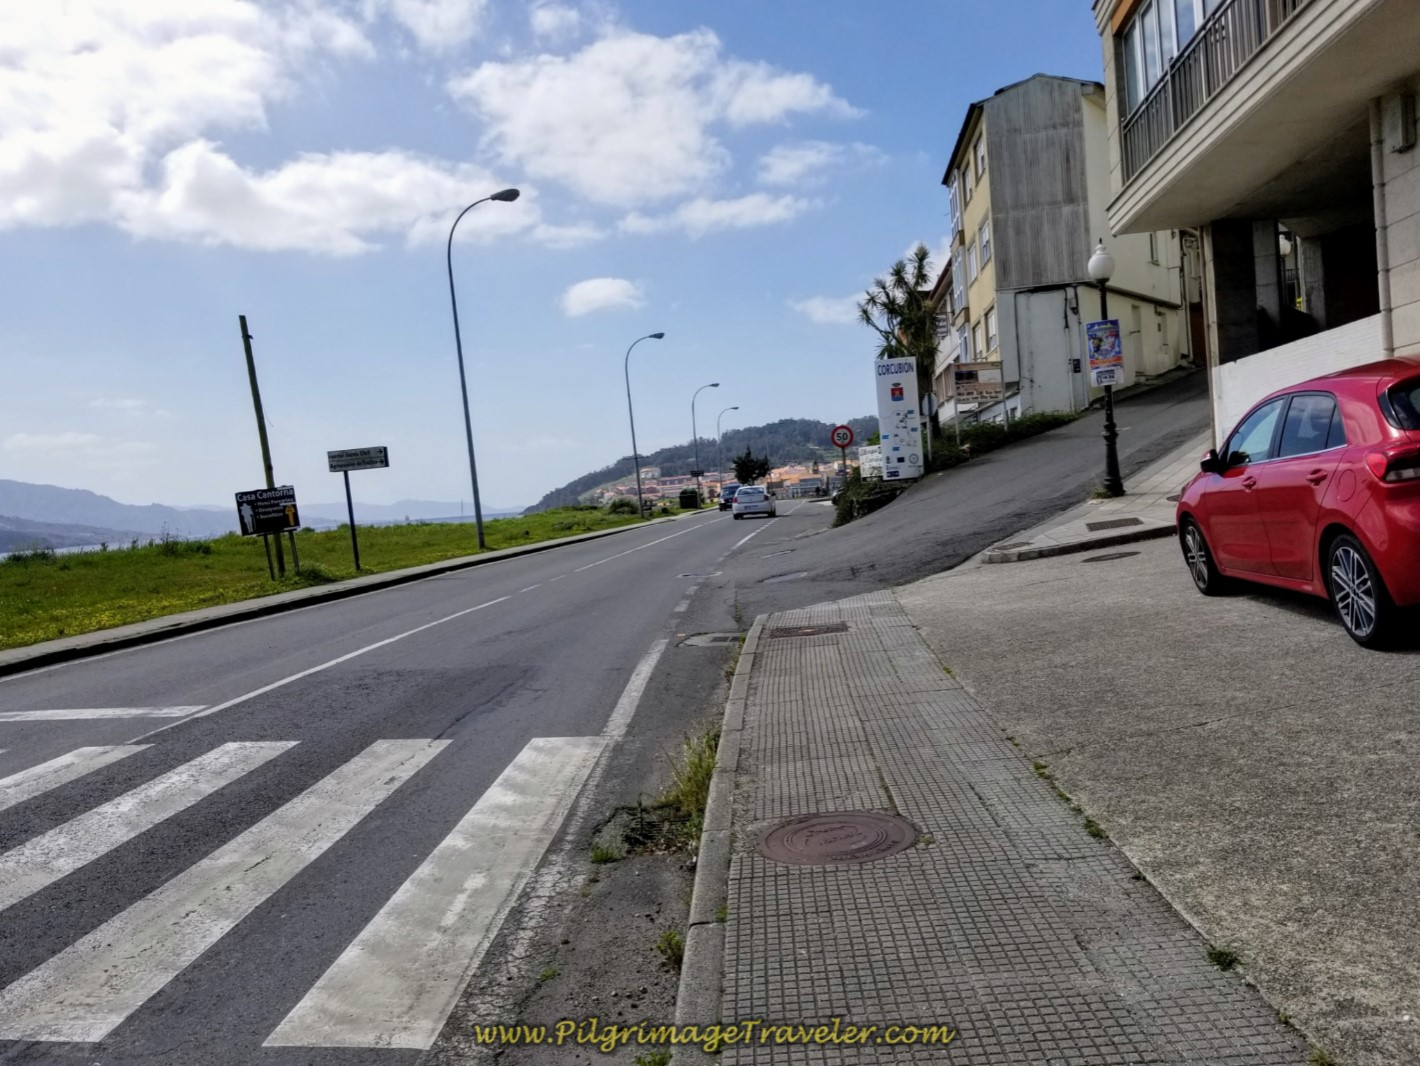 Turn Right Up Hill in Corcubión at this Intersection